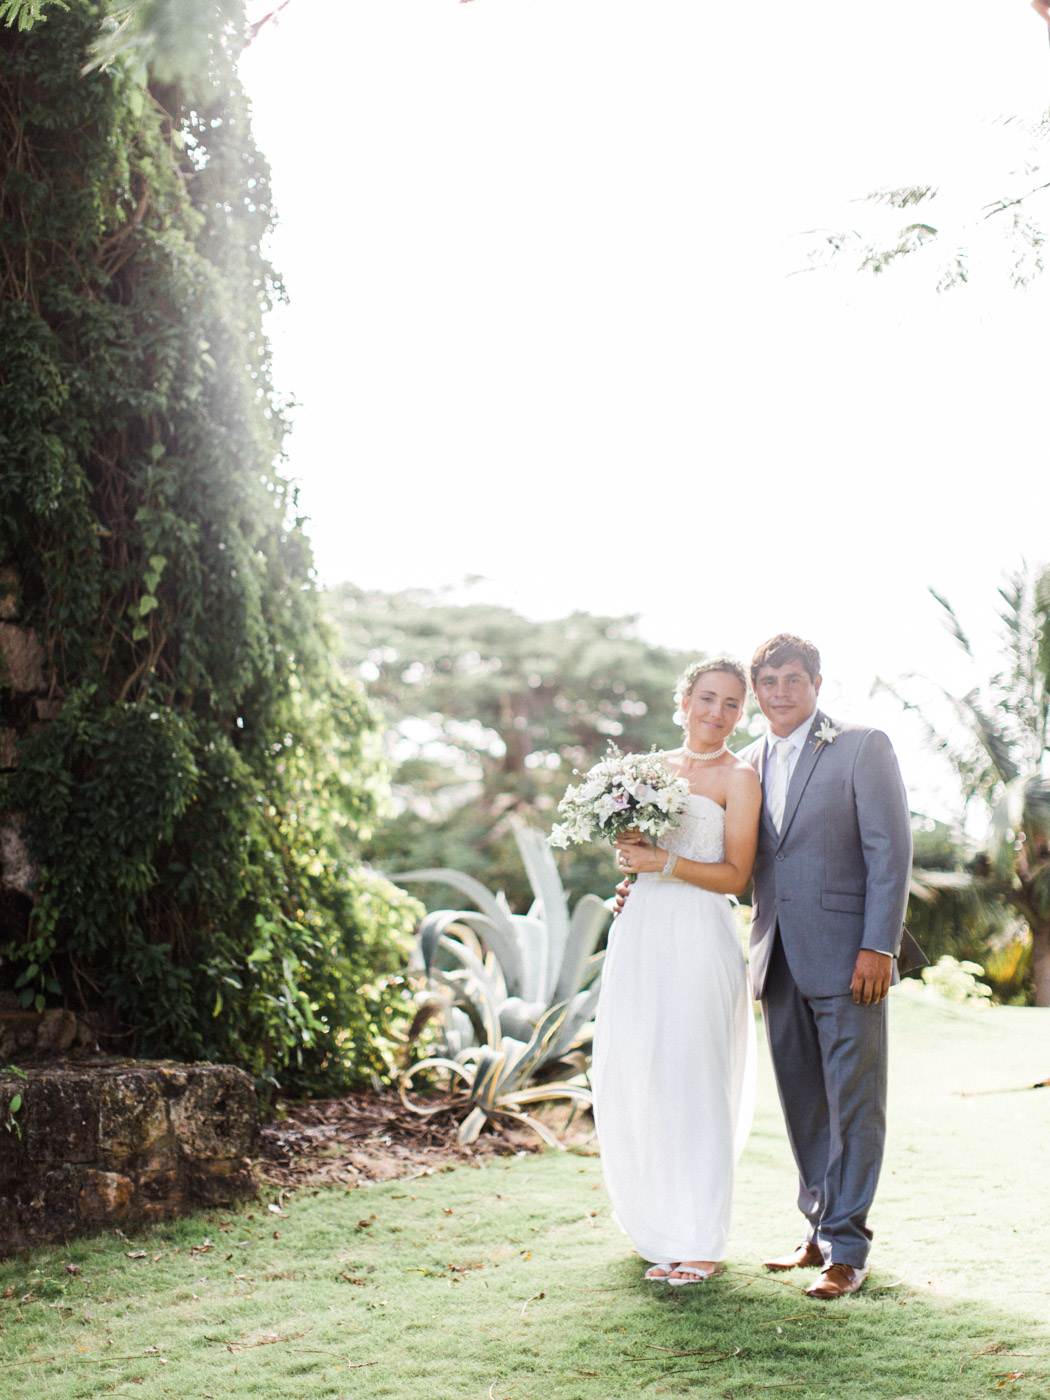 destination-wedding-photographer-barbados-tropical-wedding-425.jpg